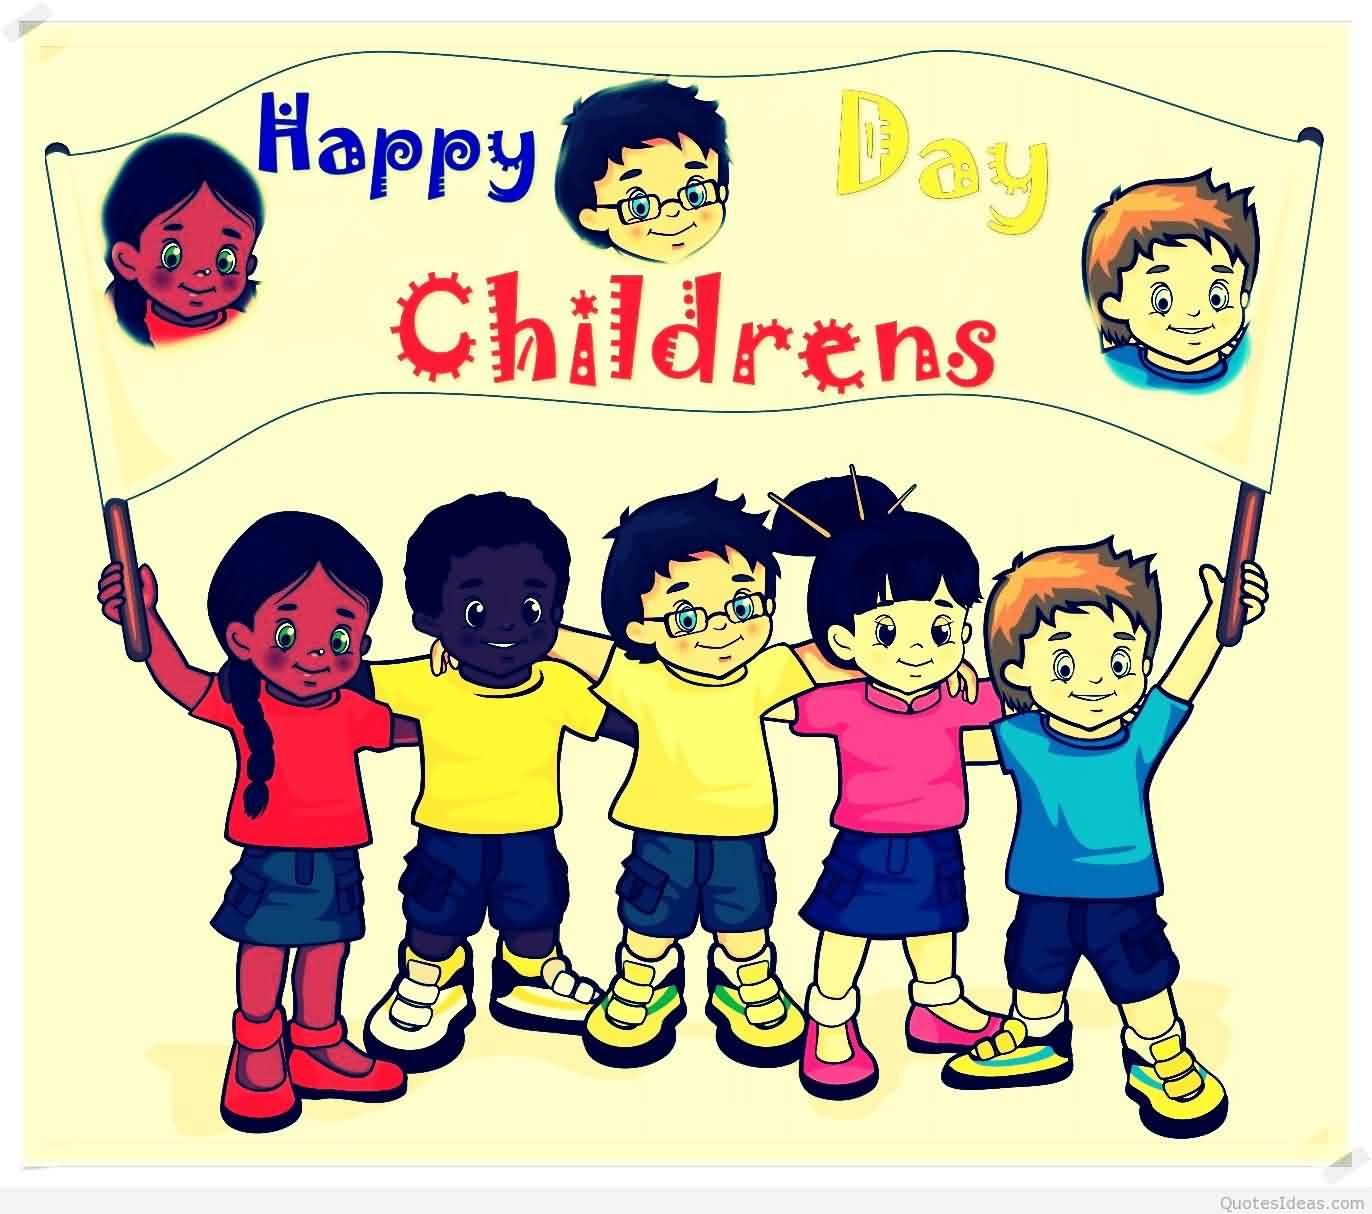 childrens day essay in telugu language